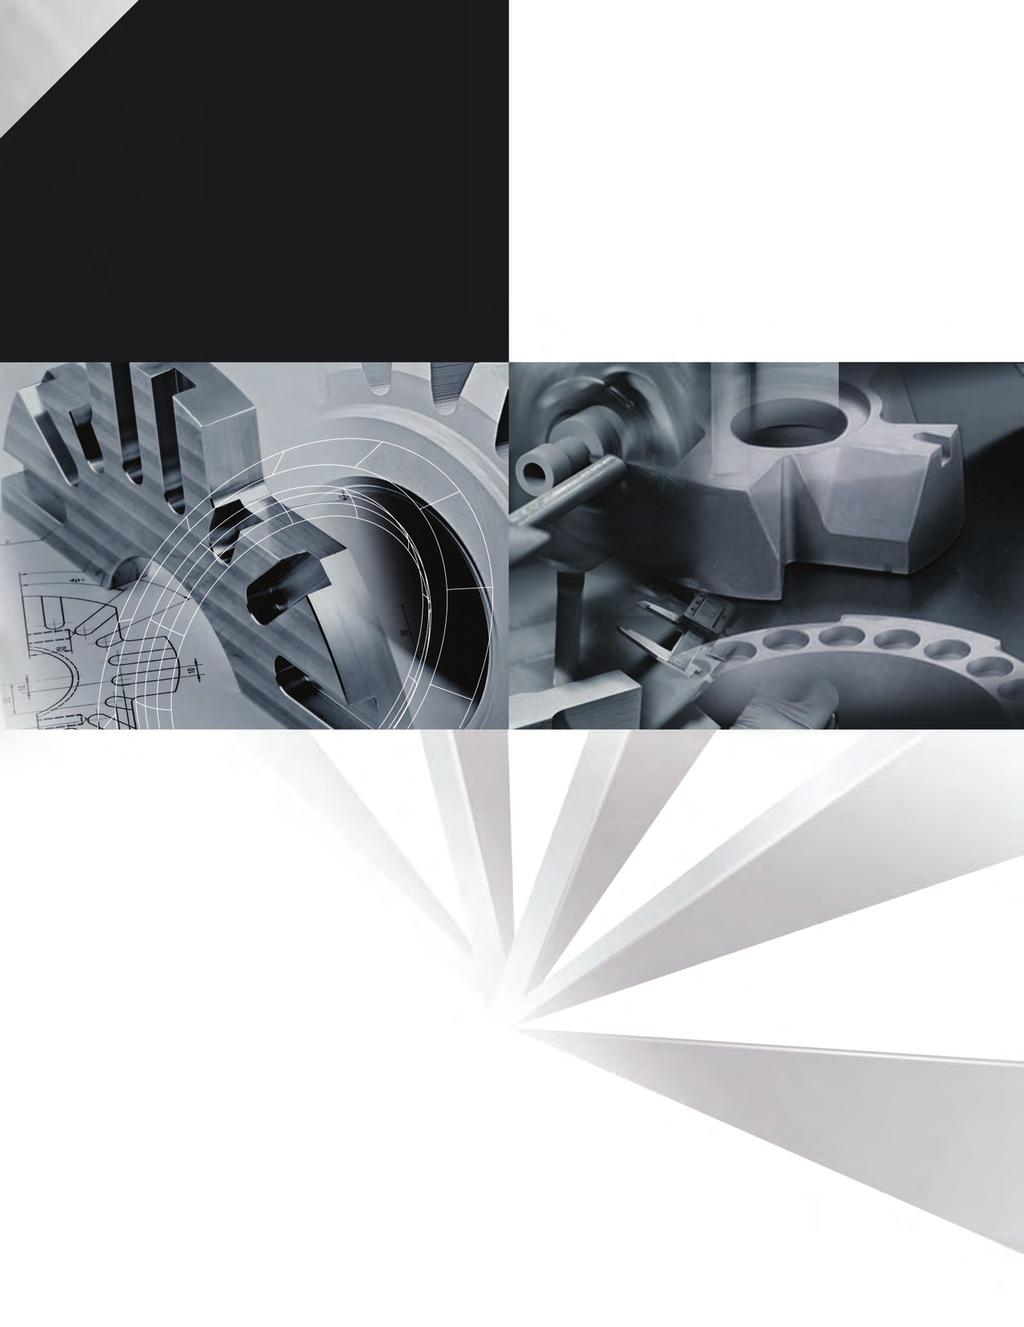 OUR MANUFACTURING CAPABILITIES Extramet has a wide range of manufacturing capabilities and extensive prototype-tooling and production experience in the custom applications of tungsten carbide